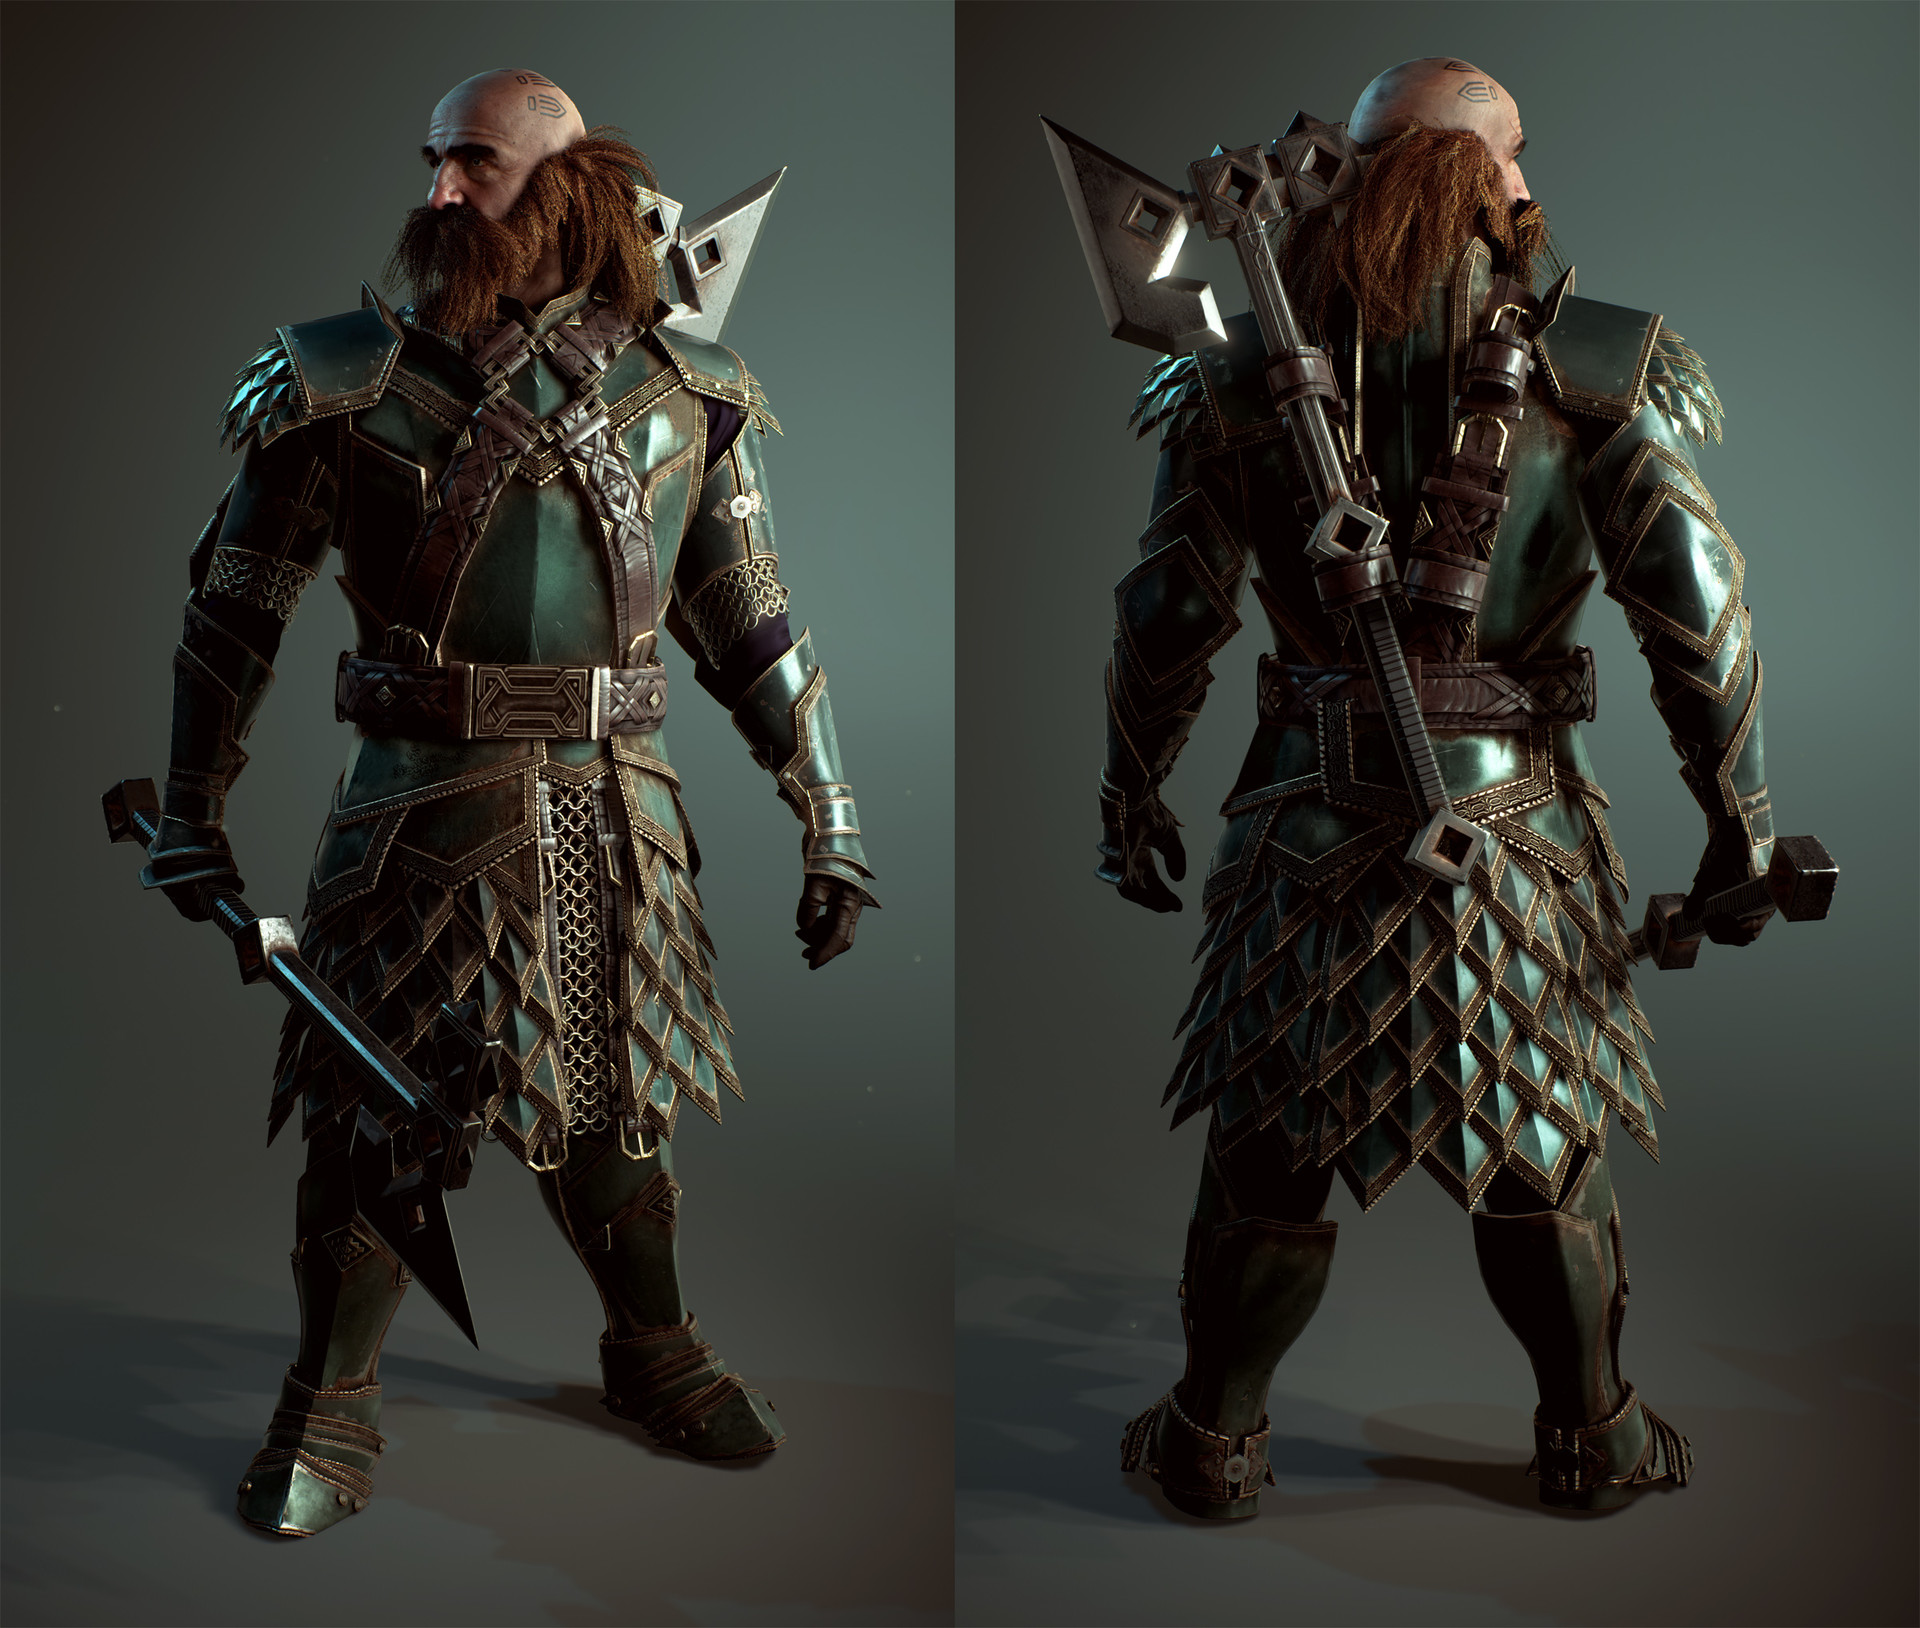 Dwarf Dwalin Realtime Model created in Unreal engine 4 ...